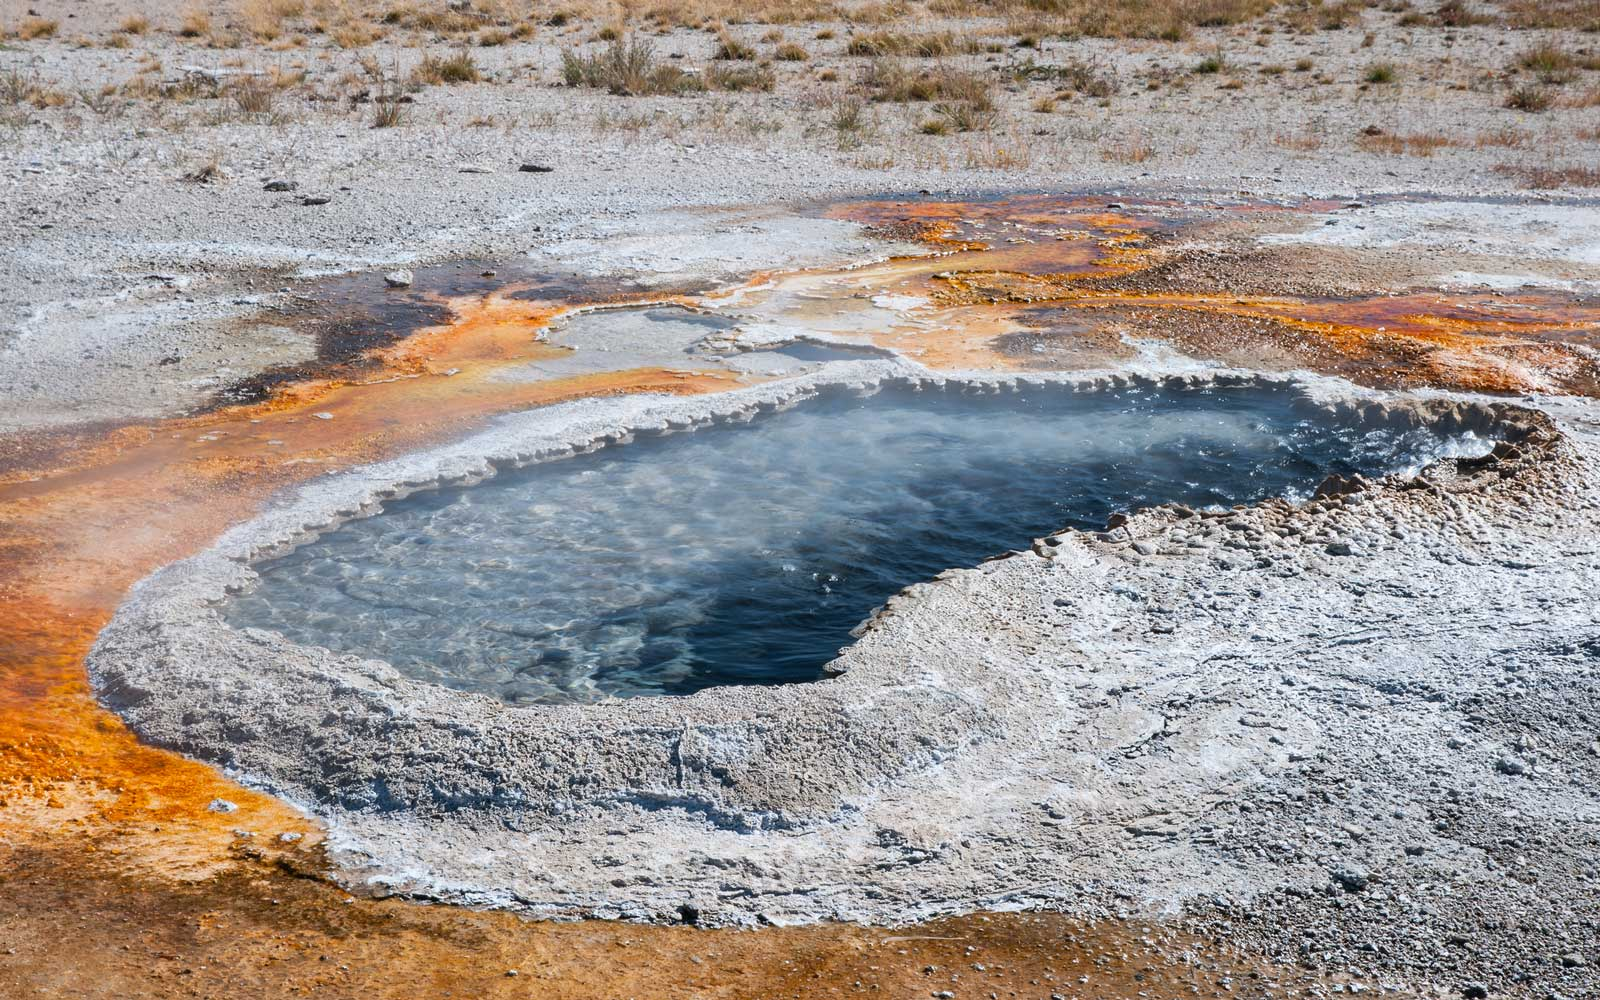 Ear Spring in the Upper Geyser Basin of Yellowstone National Park, Wyoming